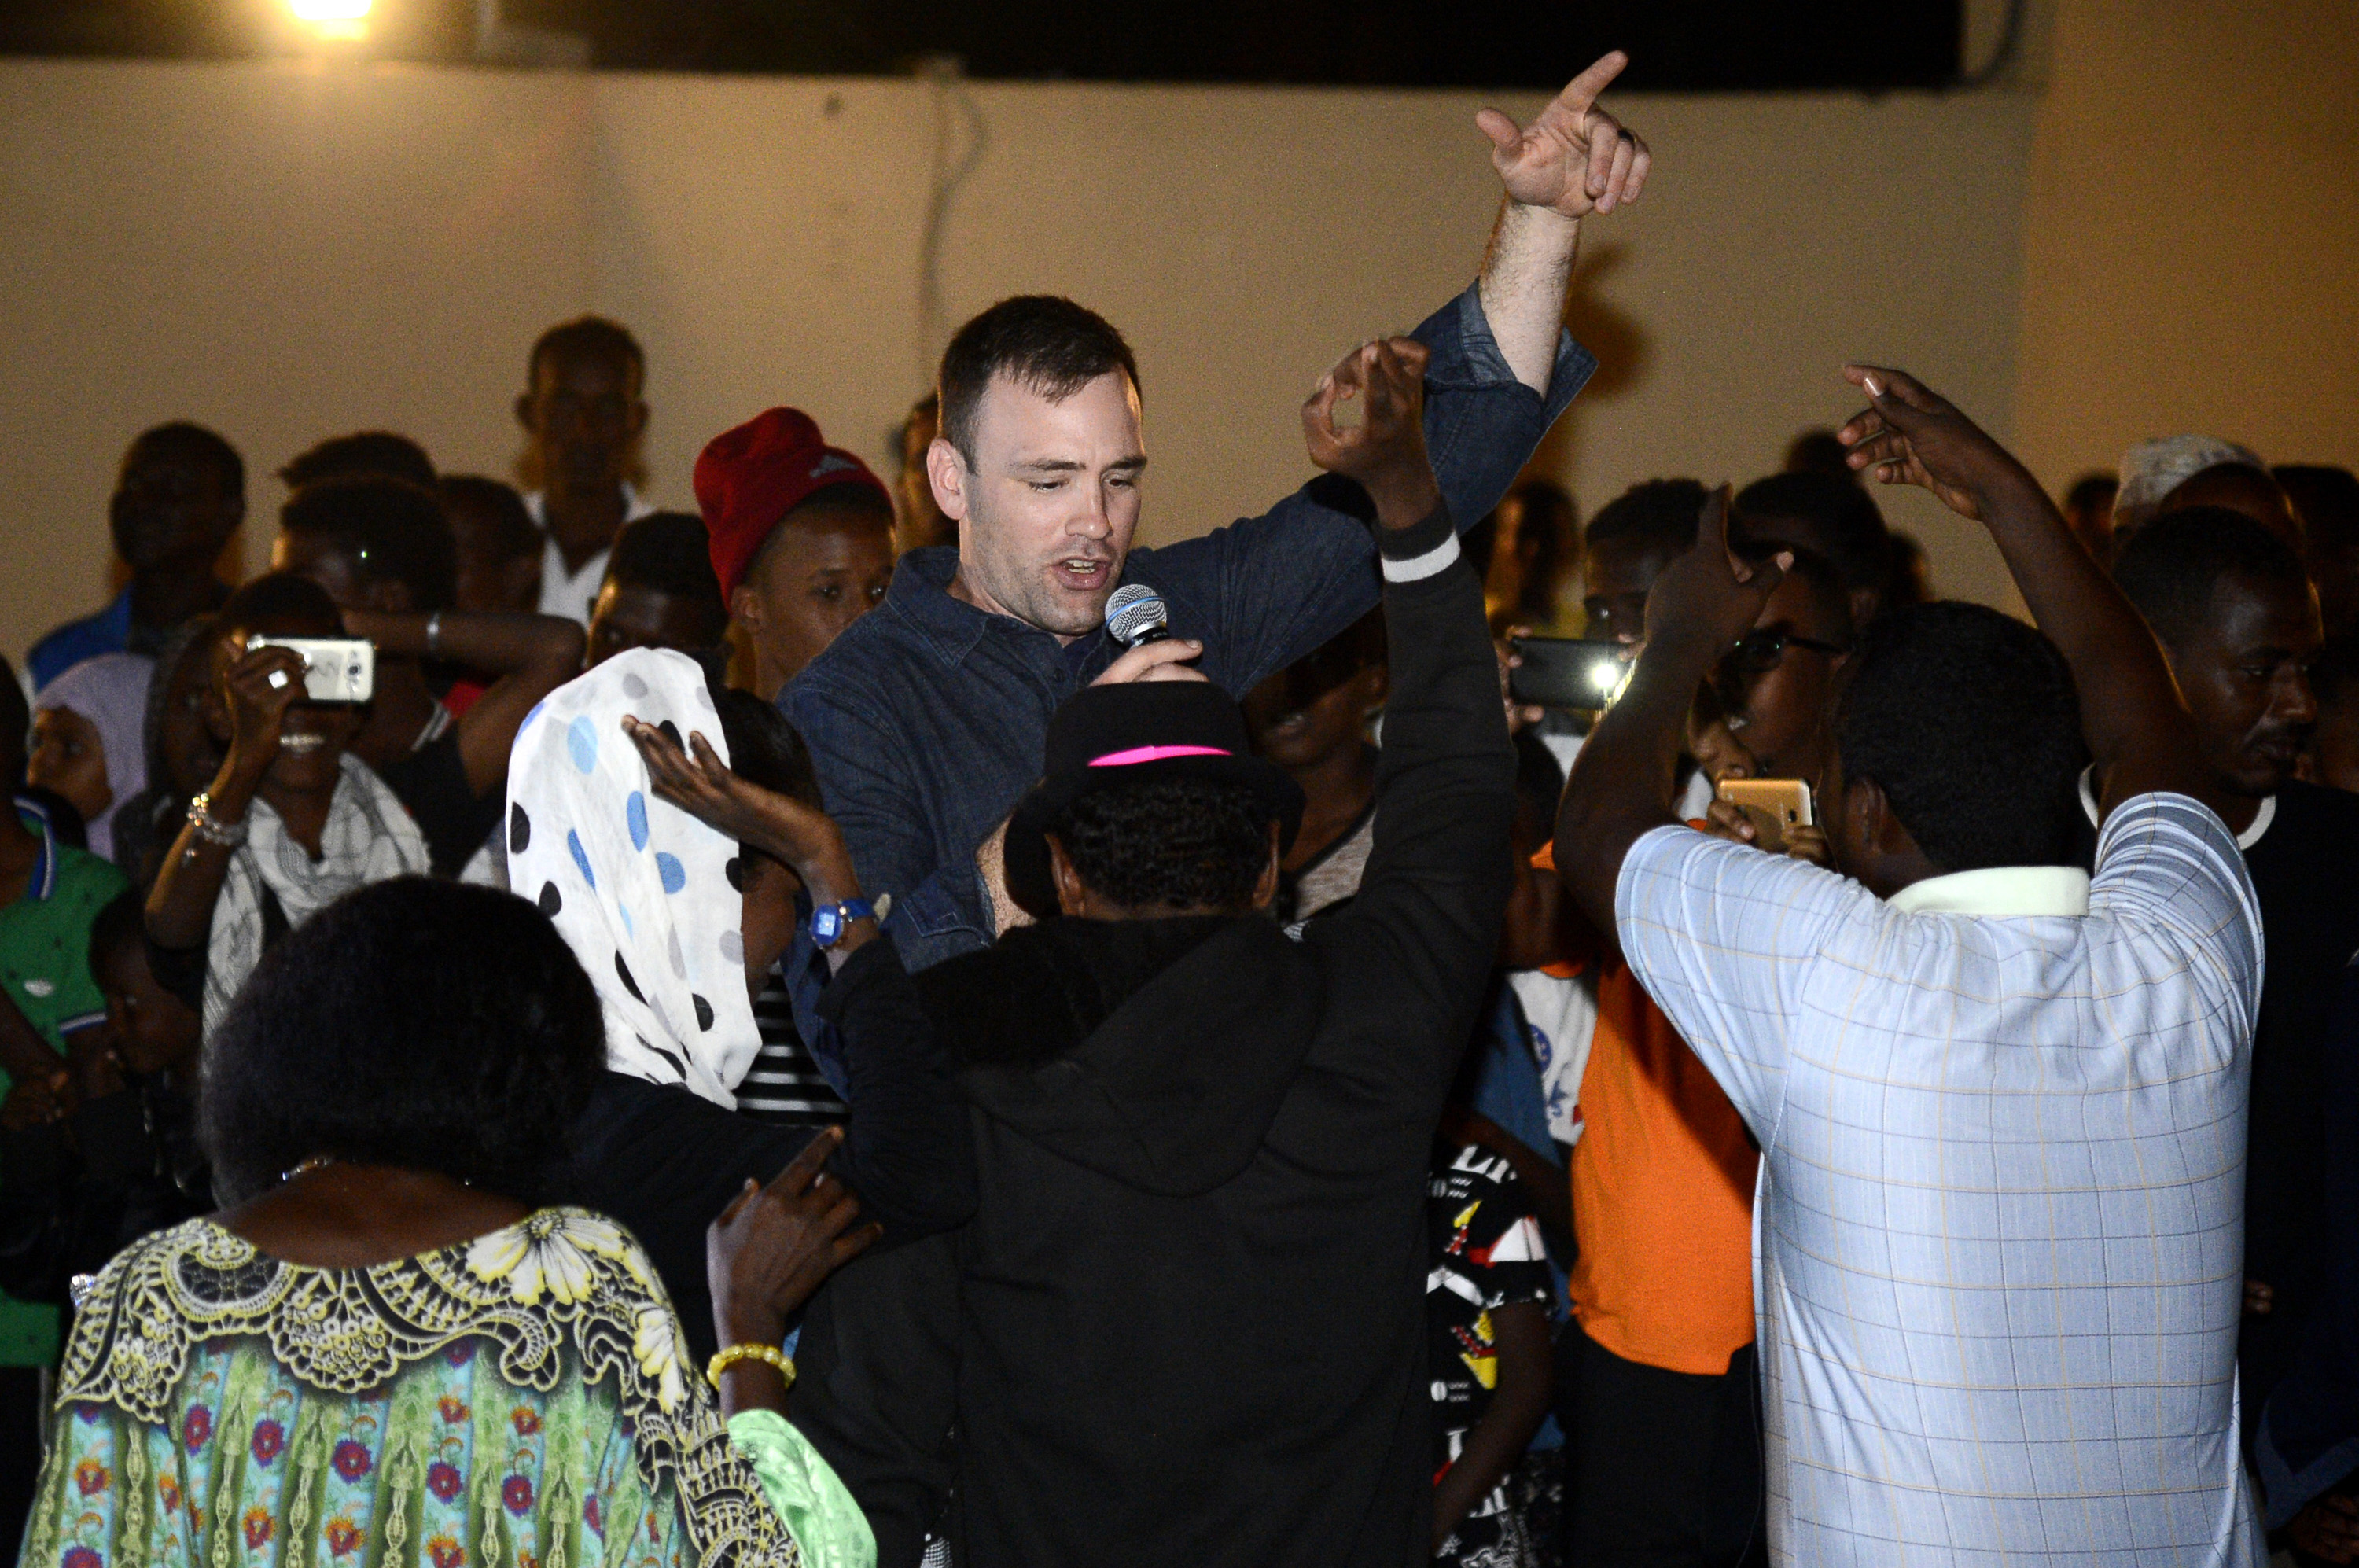 U.S. Air Force Staff Sgt. Craig Larimer, a member of the Air Forces Central Command (AFCENT) Band, sings and dances with Djiboutians during a concert at the Balbala E-Learning Center in Djibouti, January 10, 2018. The AFCENT Band performed at the E-Learning center as part of their two week tour where they held workshops, clinics, and concerts throughout the city of Djibouti. (U.S. Navy Photo by Mass Communication Specialist 2nd Class Timothy M. Ahearn)